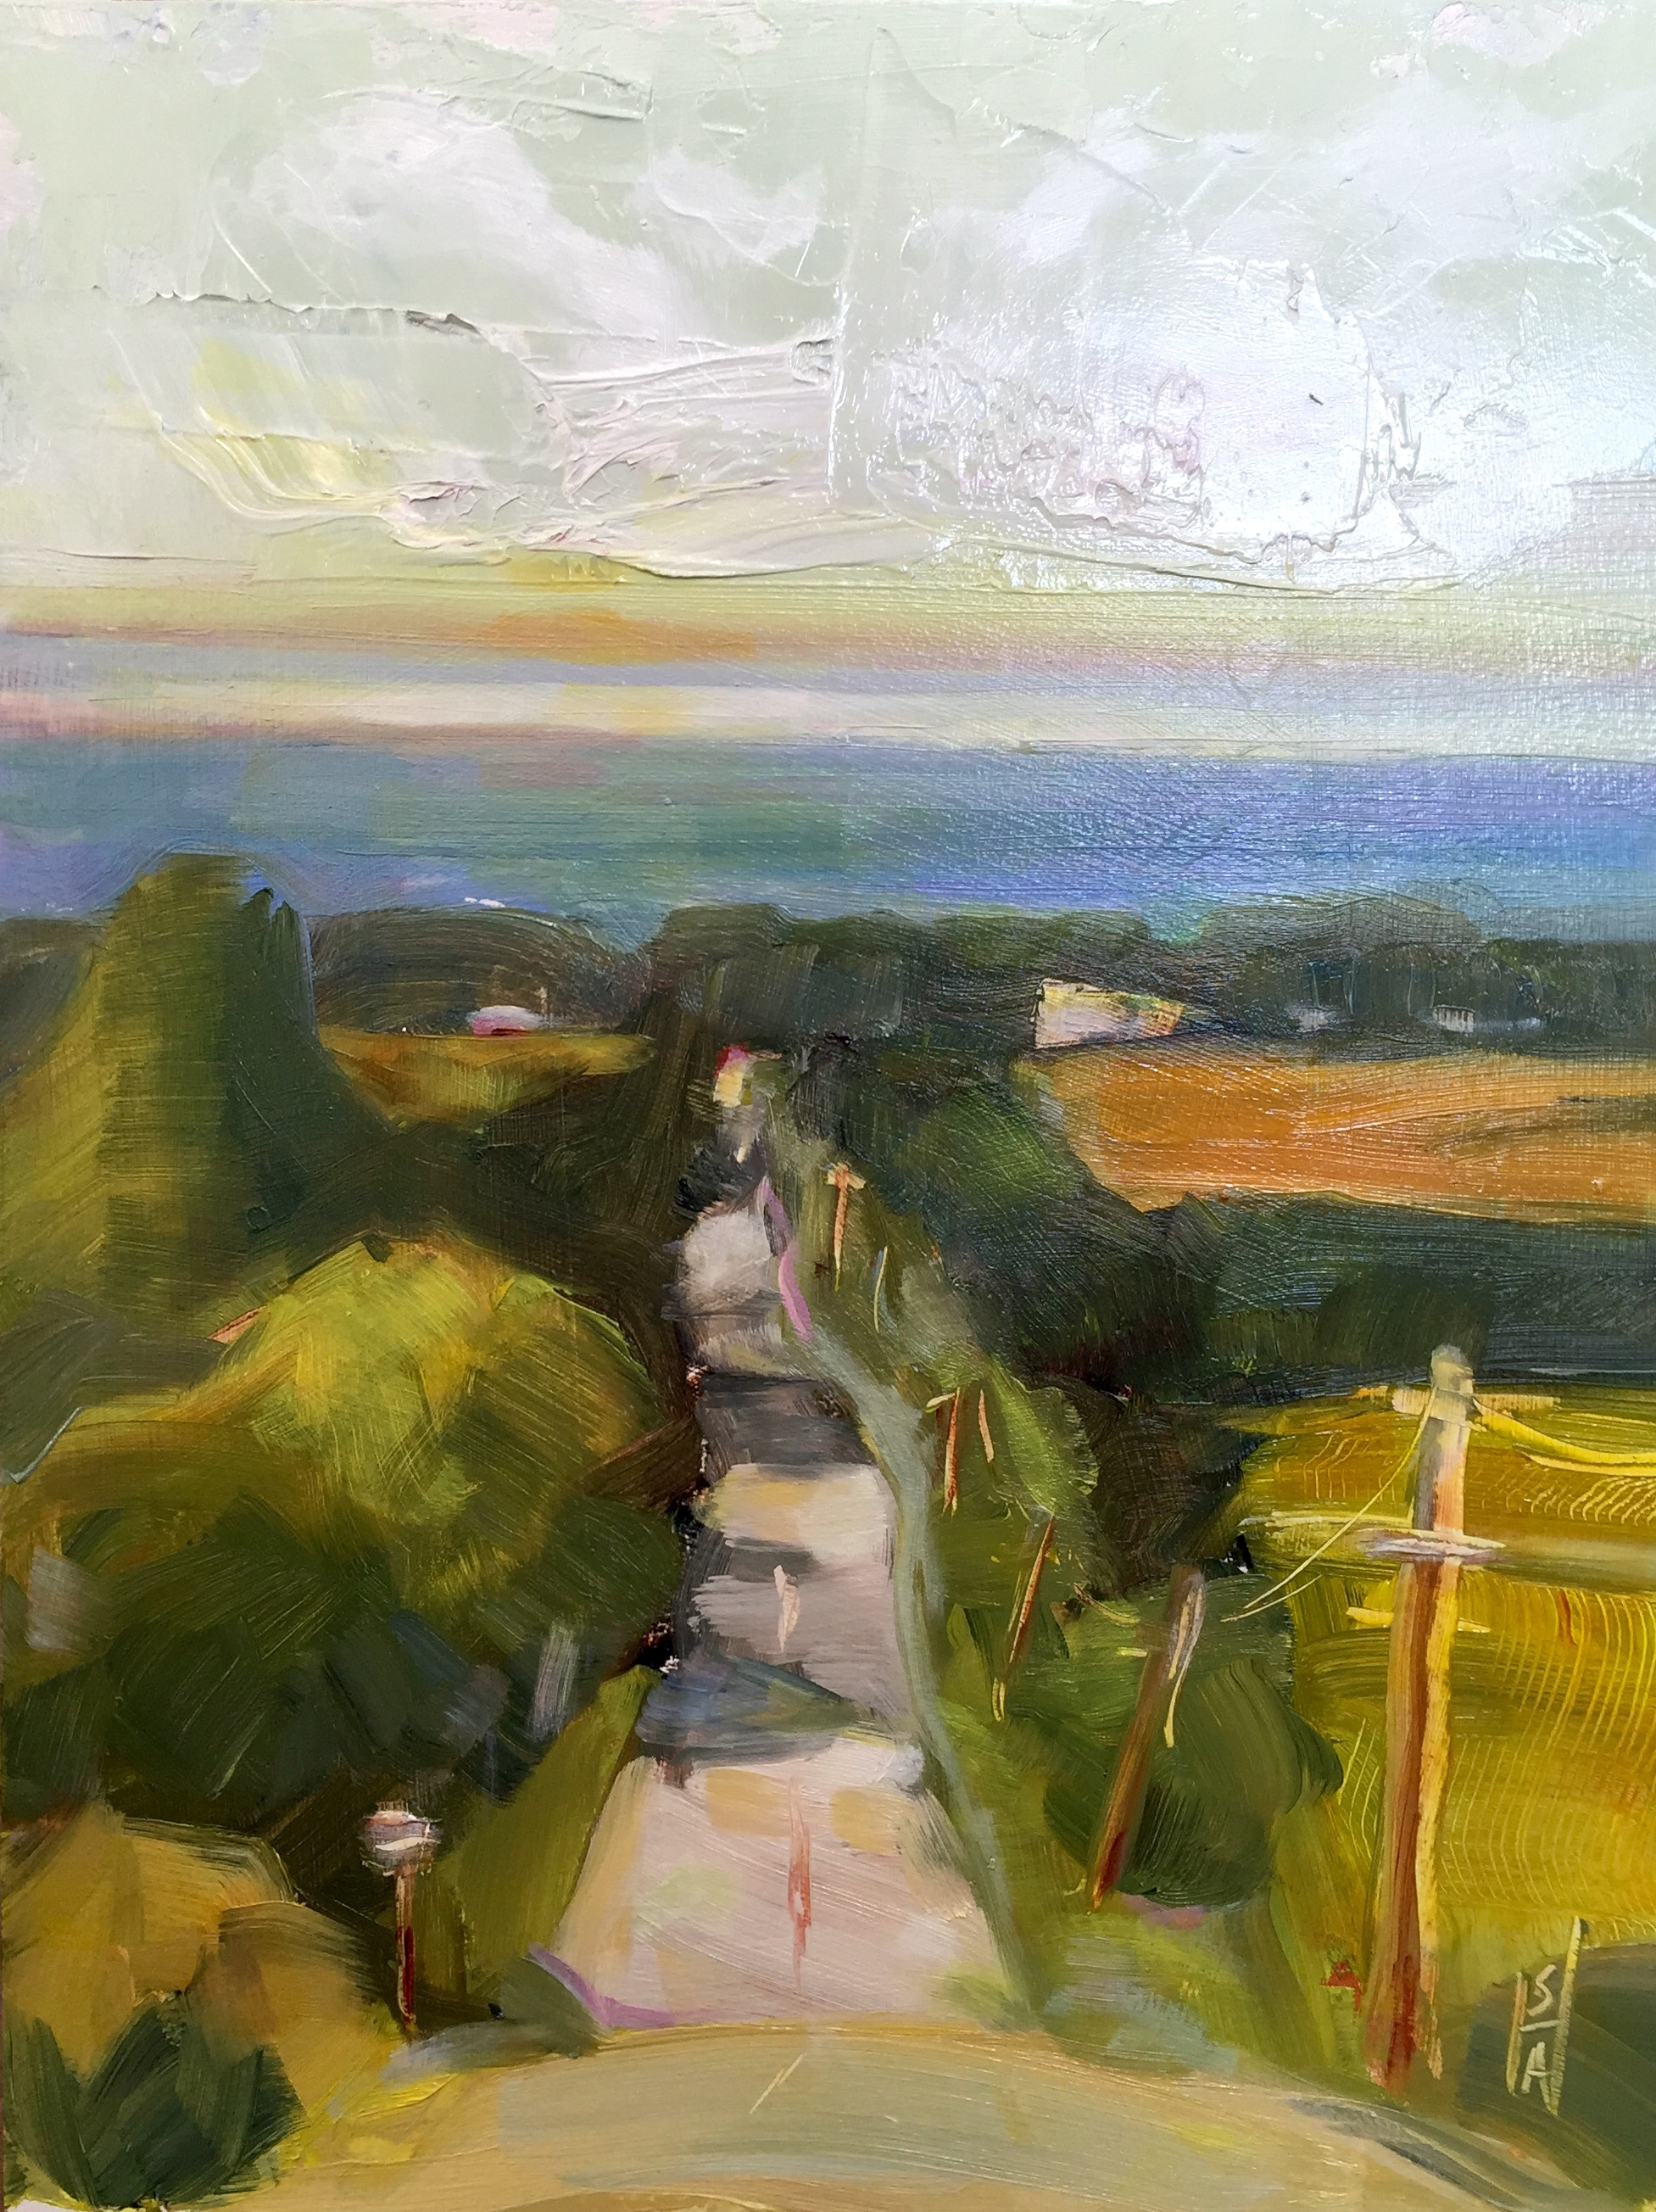 Top of the World  oil on board, 9x12, plein air. Available